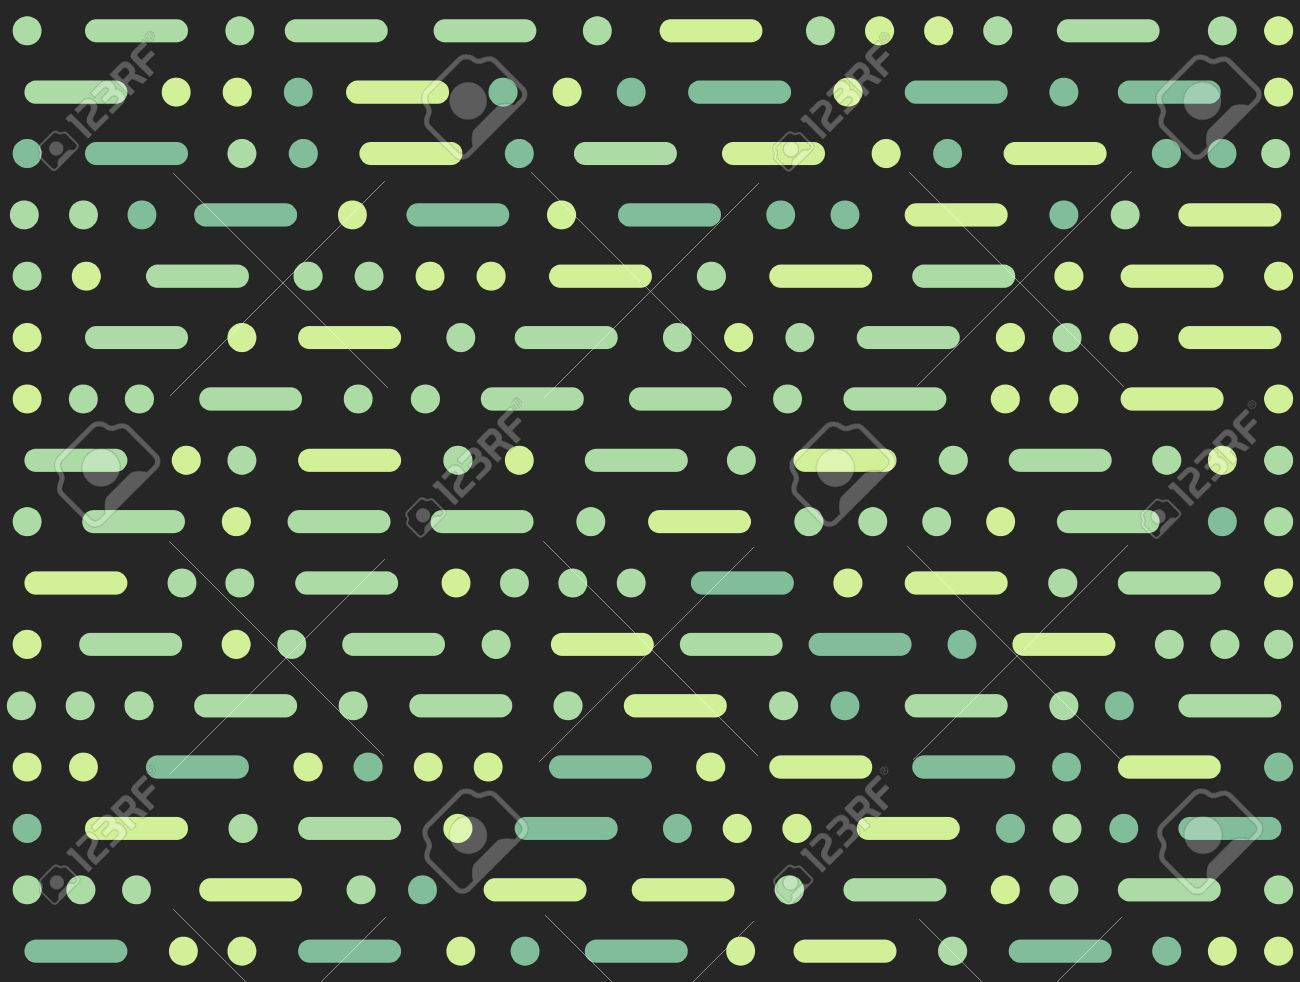 Morse Code Inspired Abstract Seamless Pattern Geometric Dots